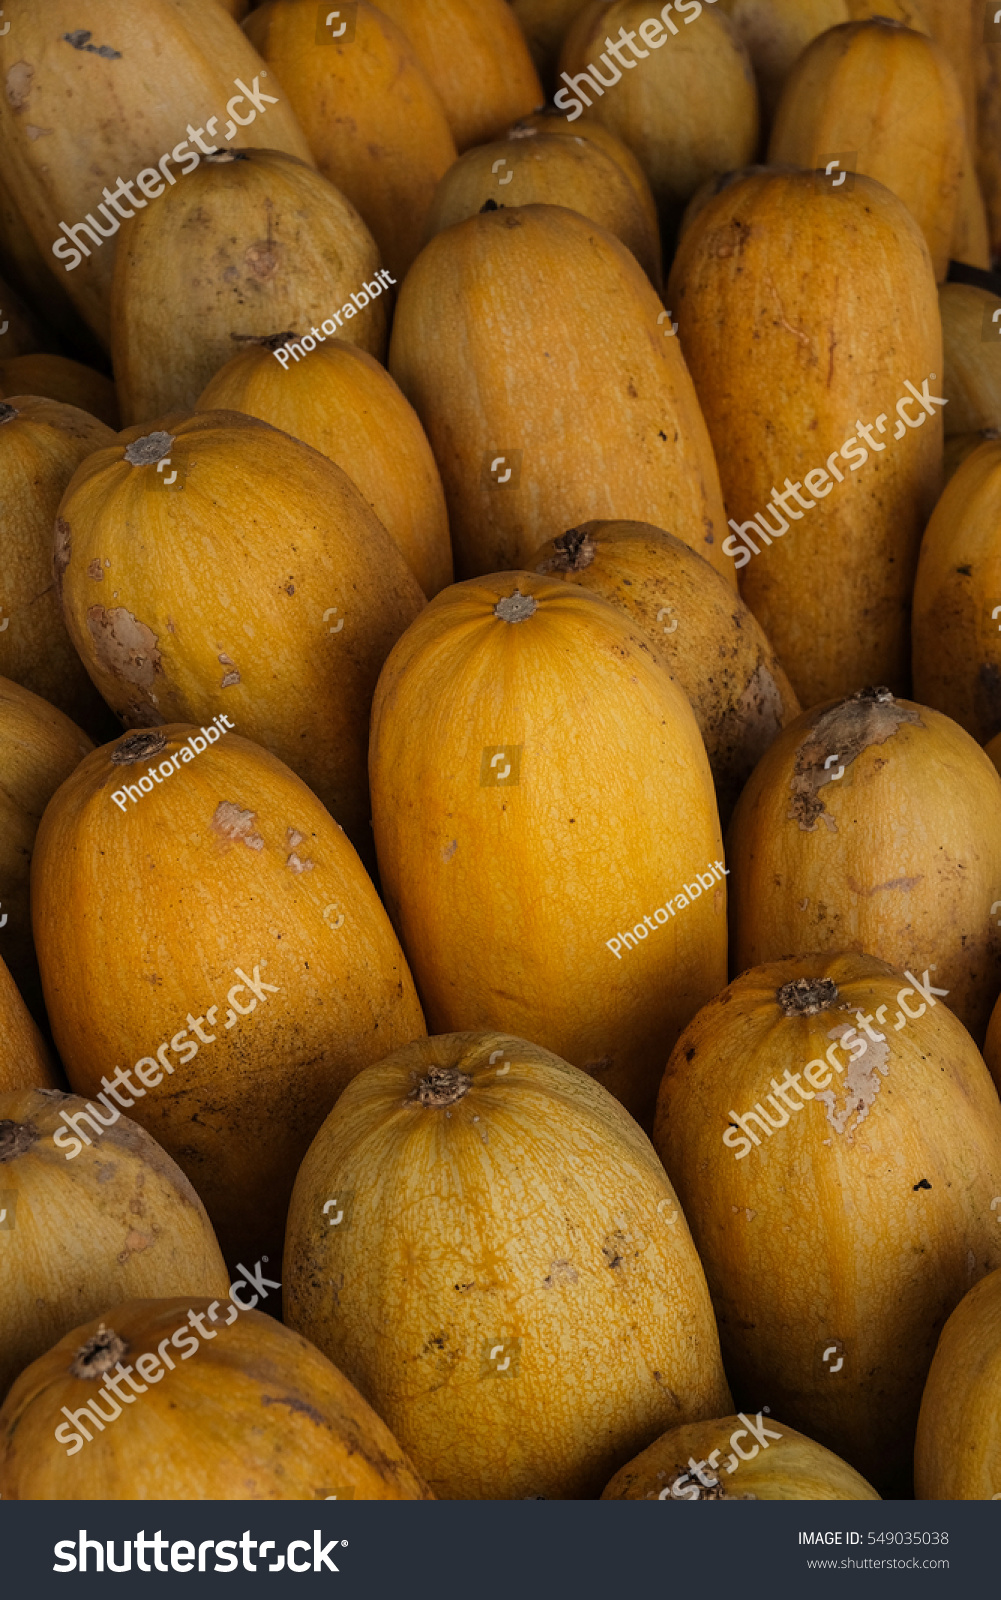 How long for squash to mature